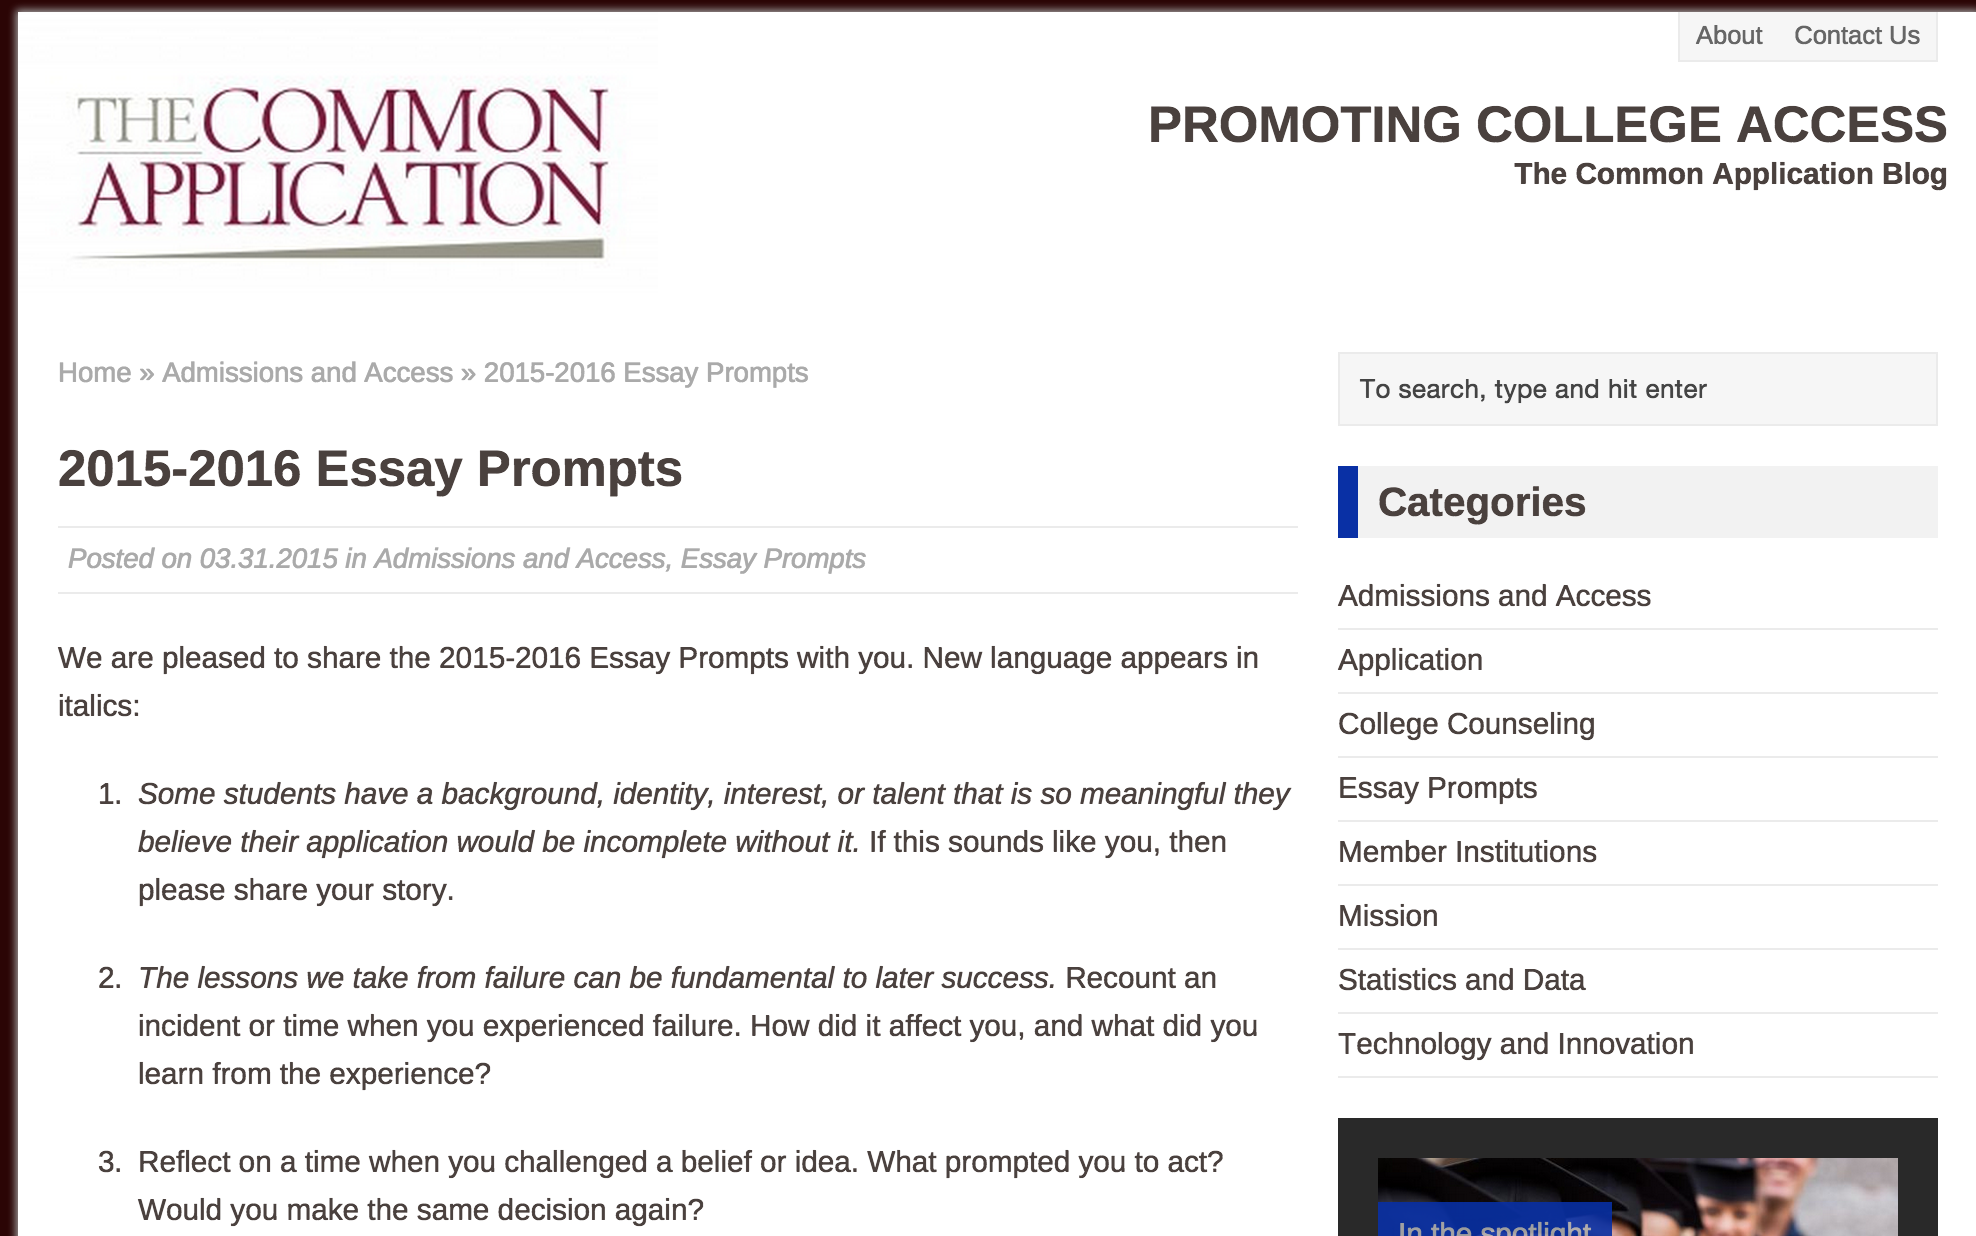 004 Essay Example Screen Shot At Pm Common App Outstanding Ideas Examples Option 2 2017 Full